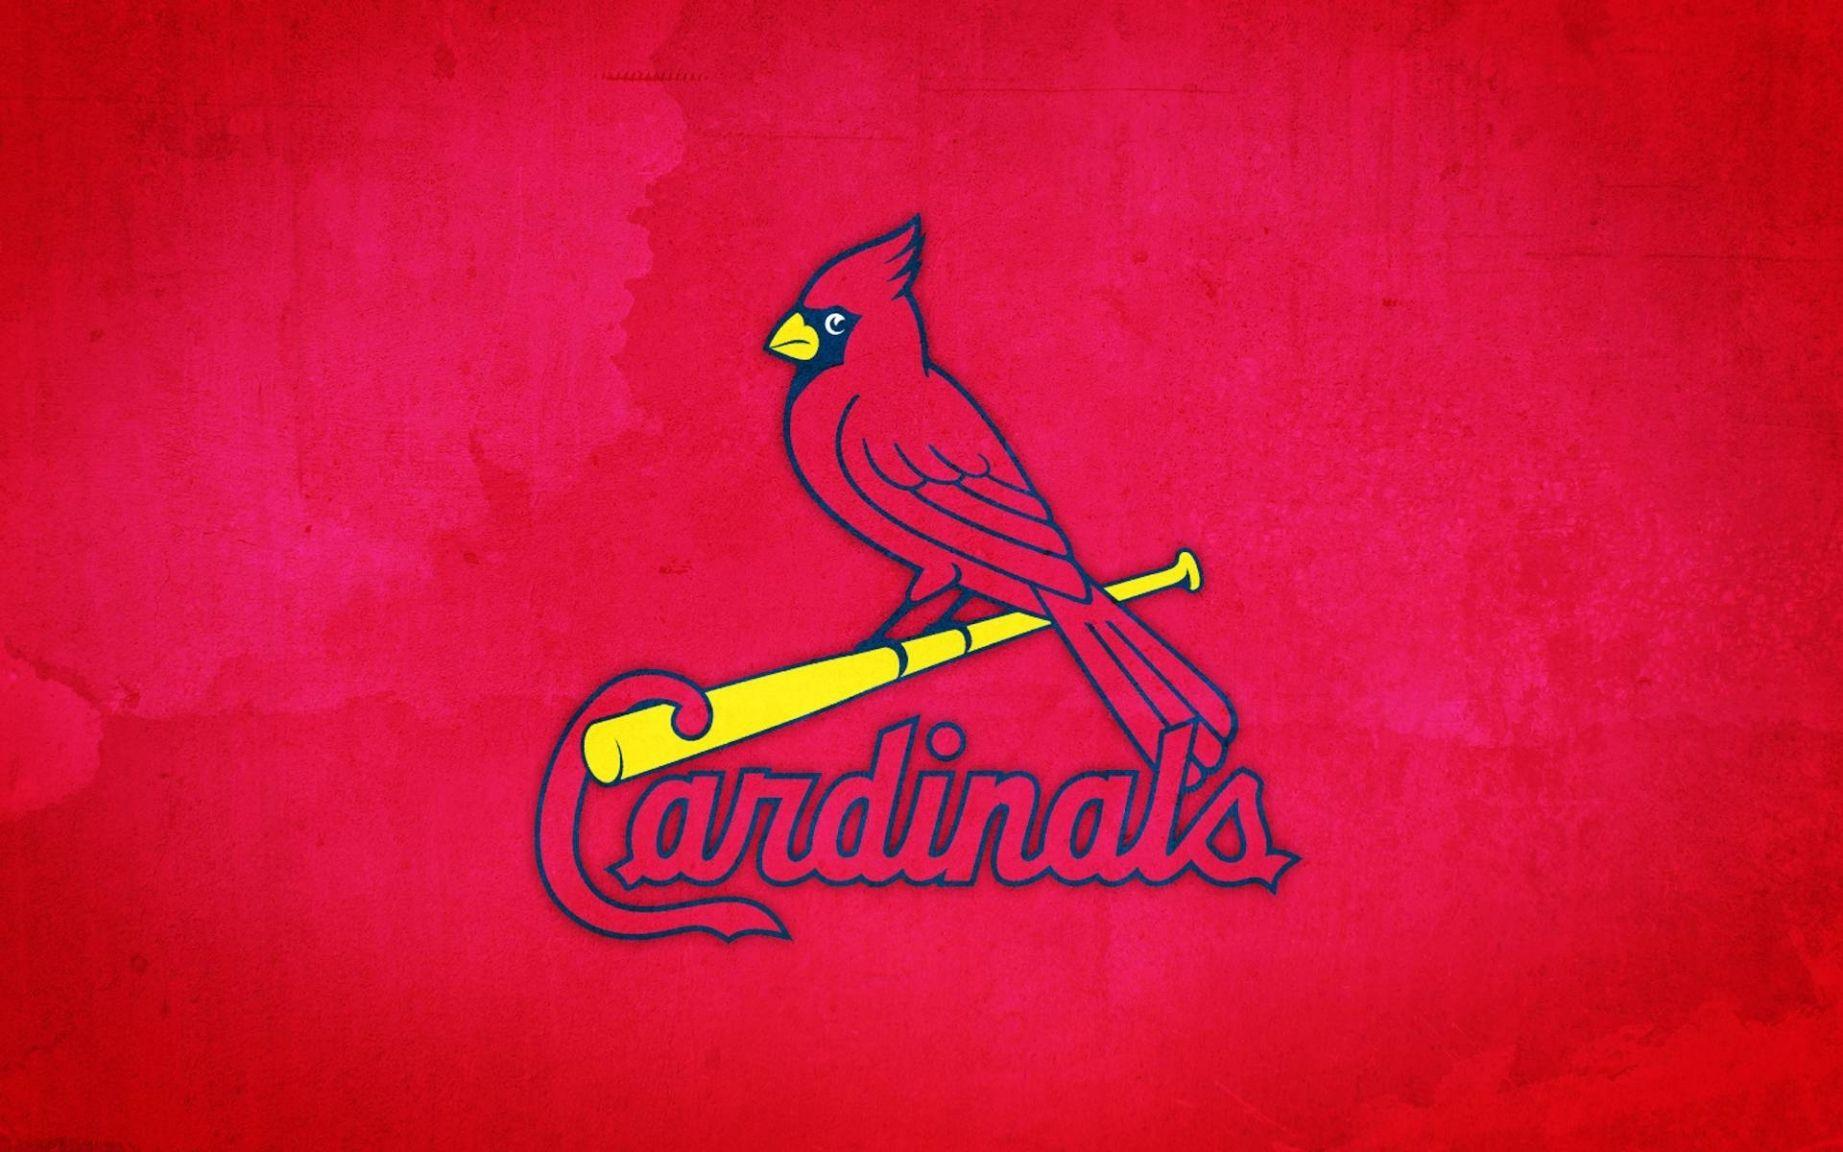 St. Louis Cardinals Wallpapers - B1gbaseball.com